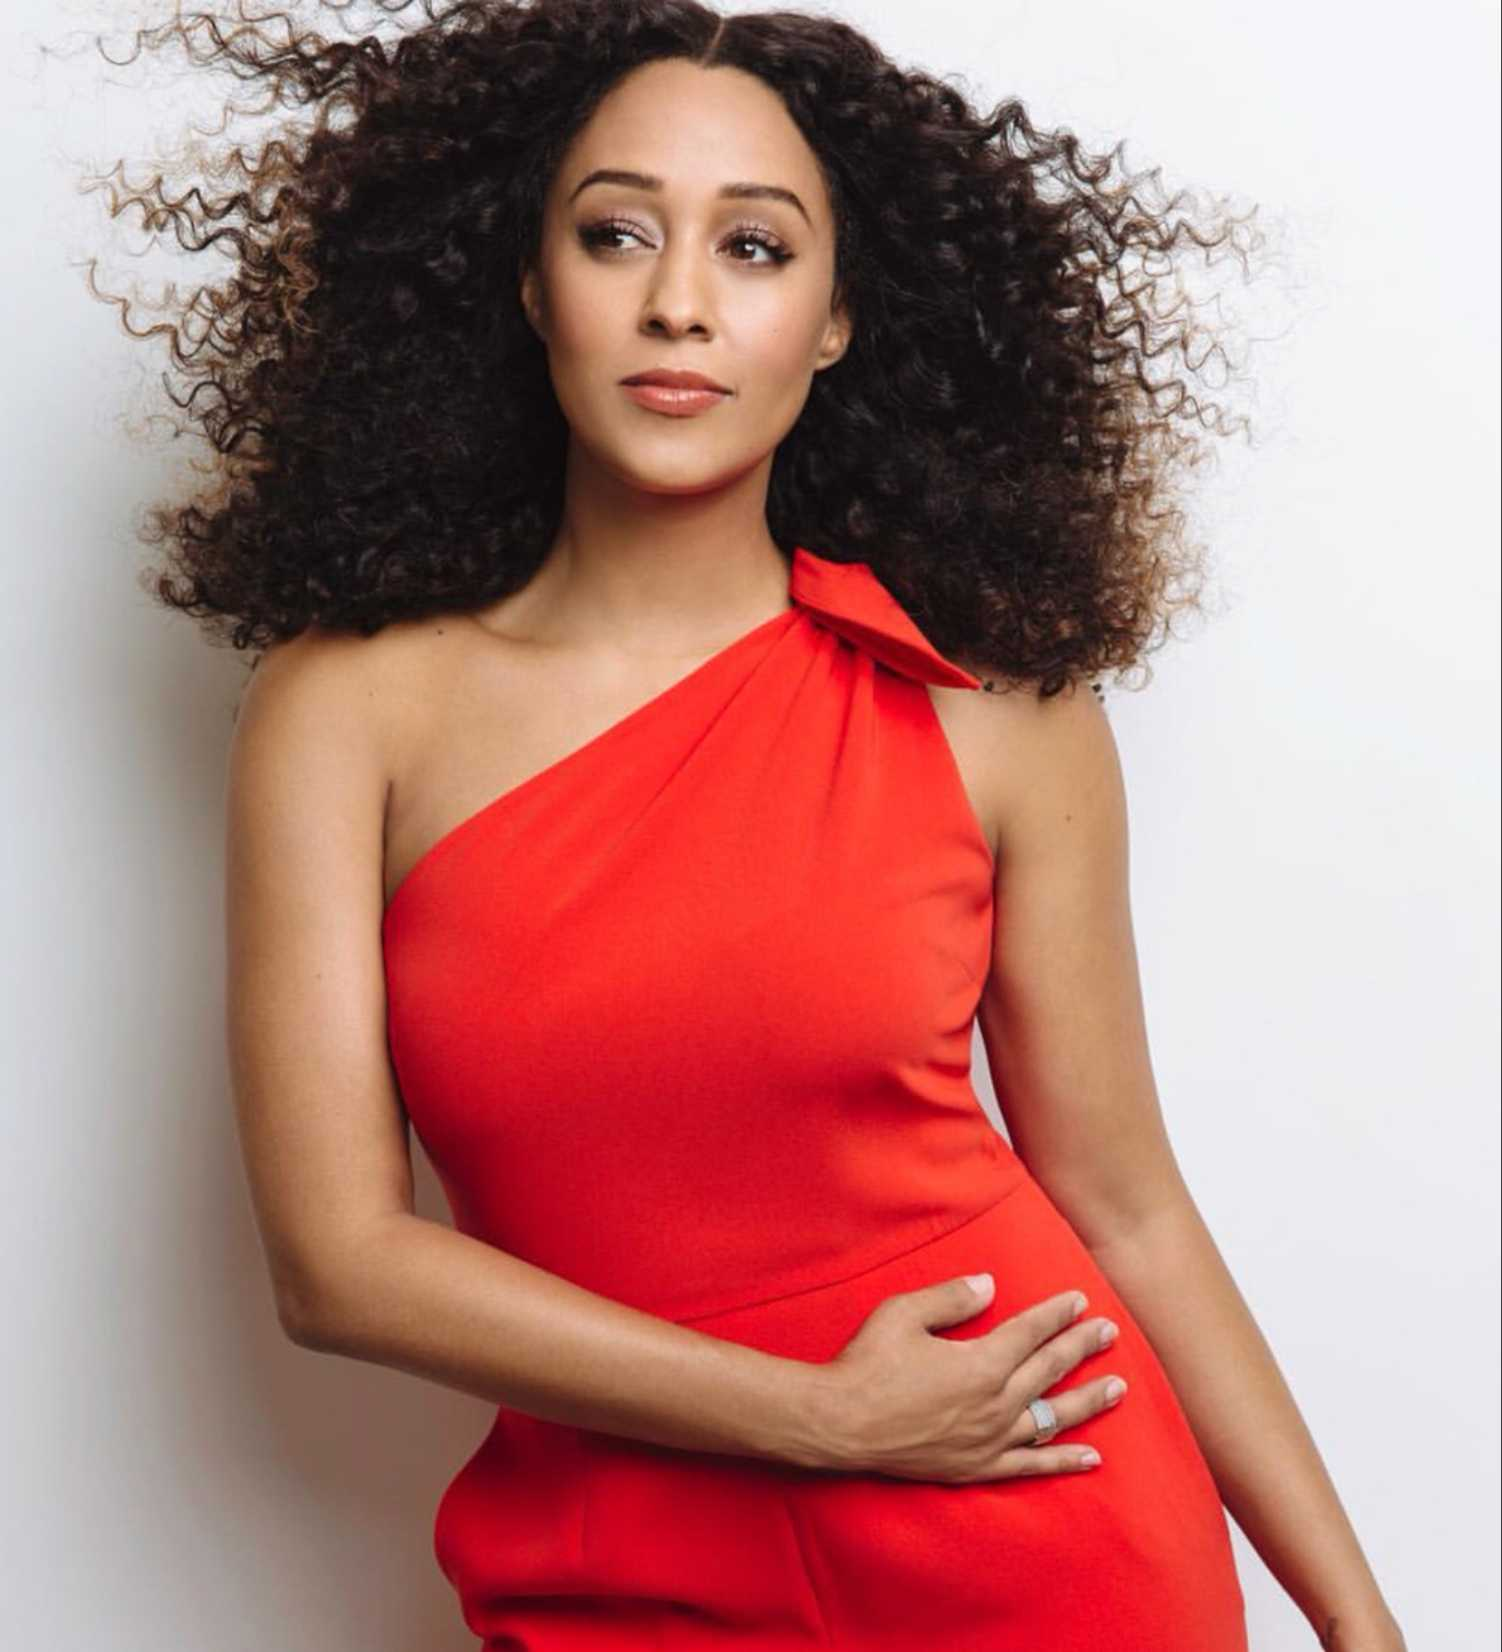 Tia Mowry Famous For